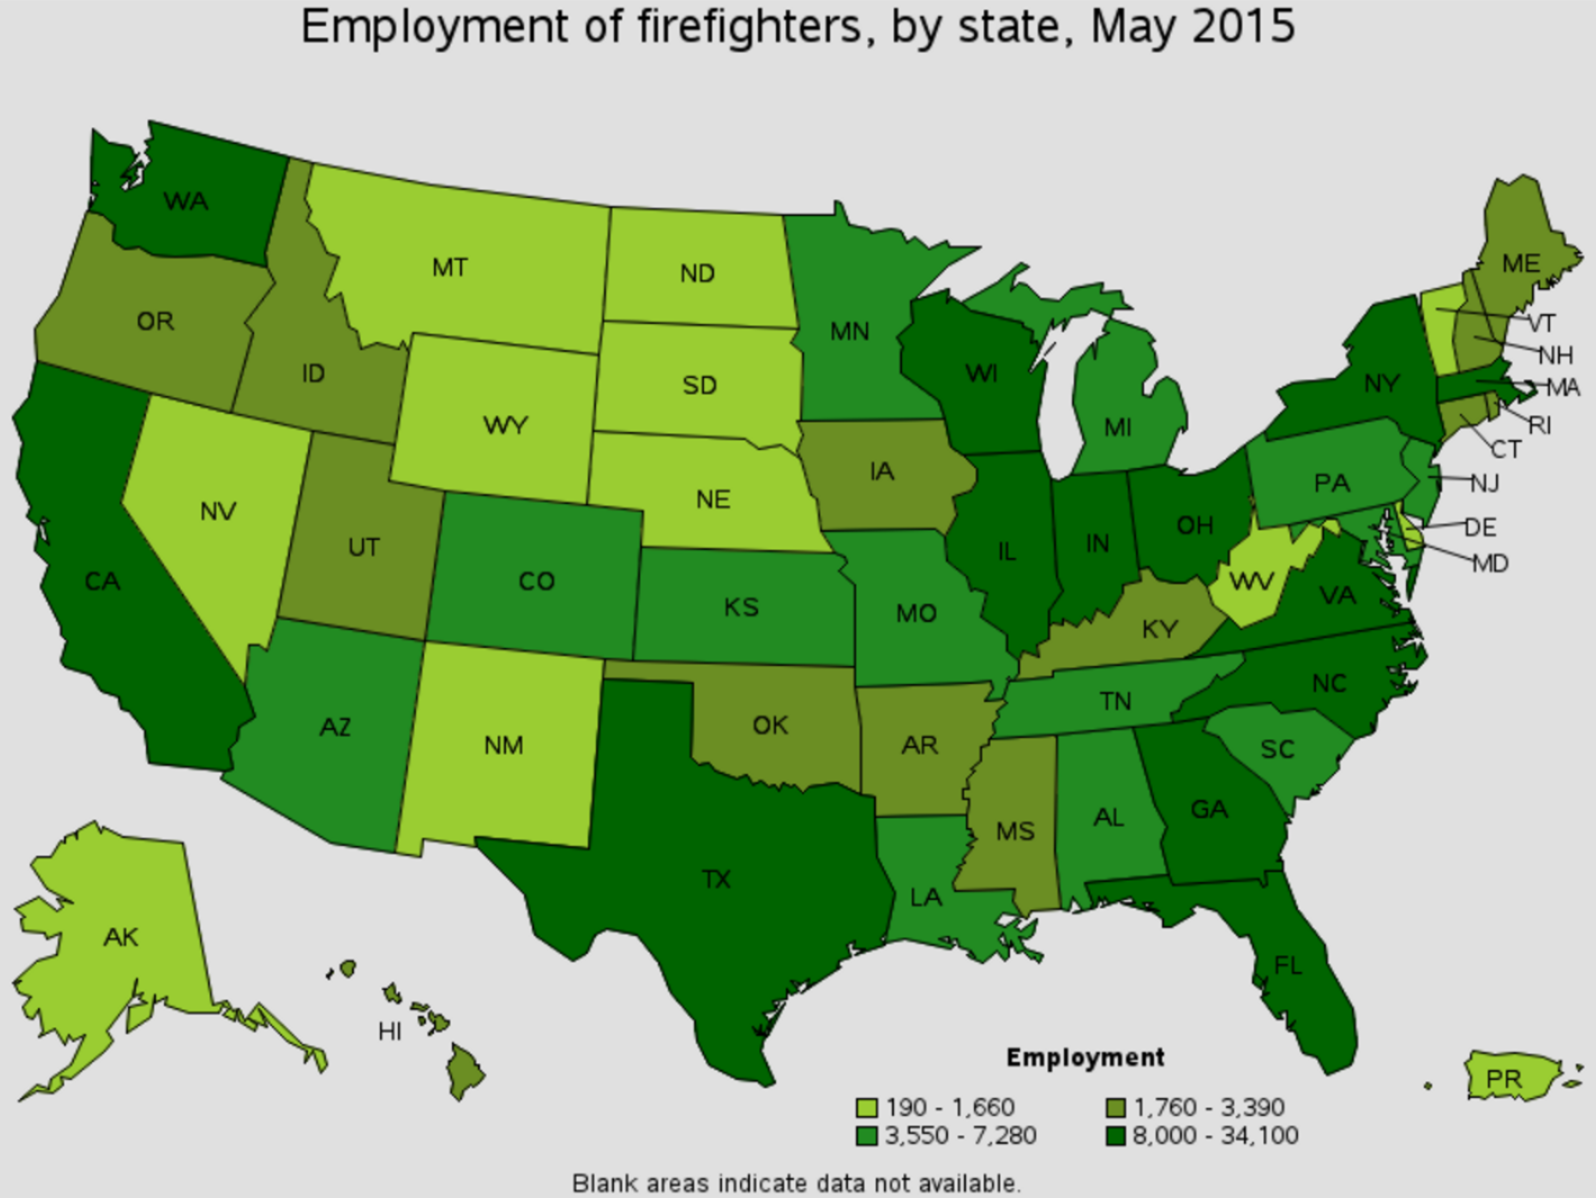 firefighter job outlook by state Granbury Texas